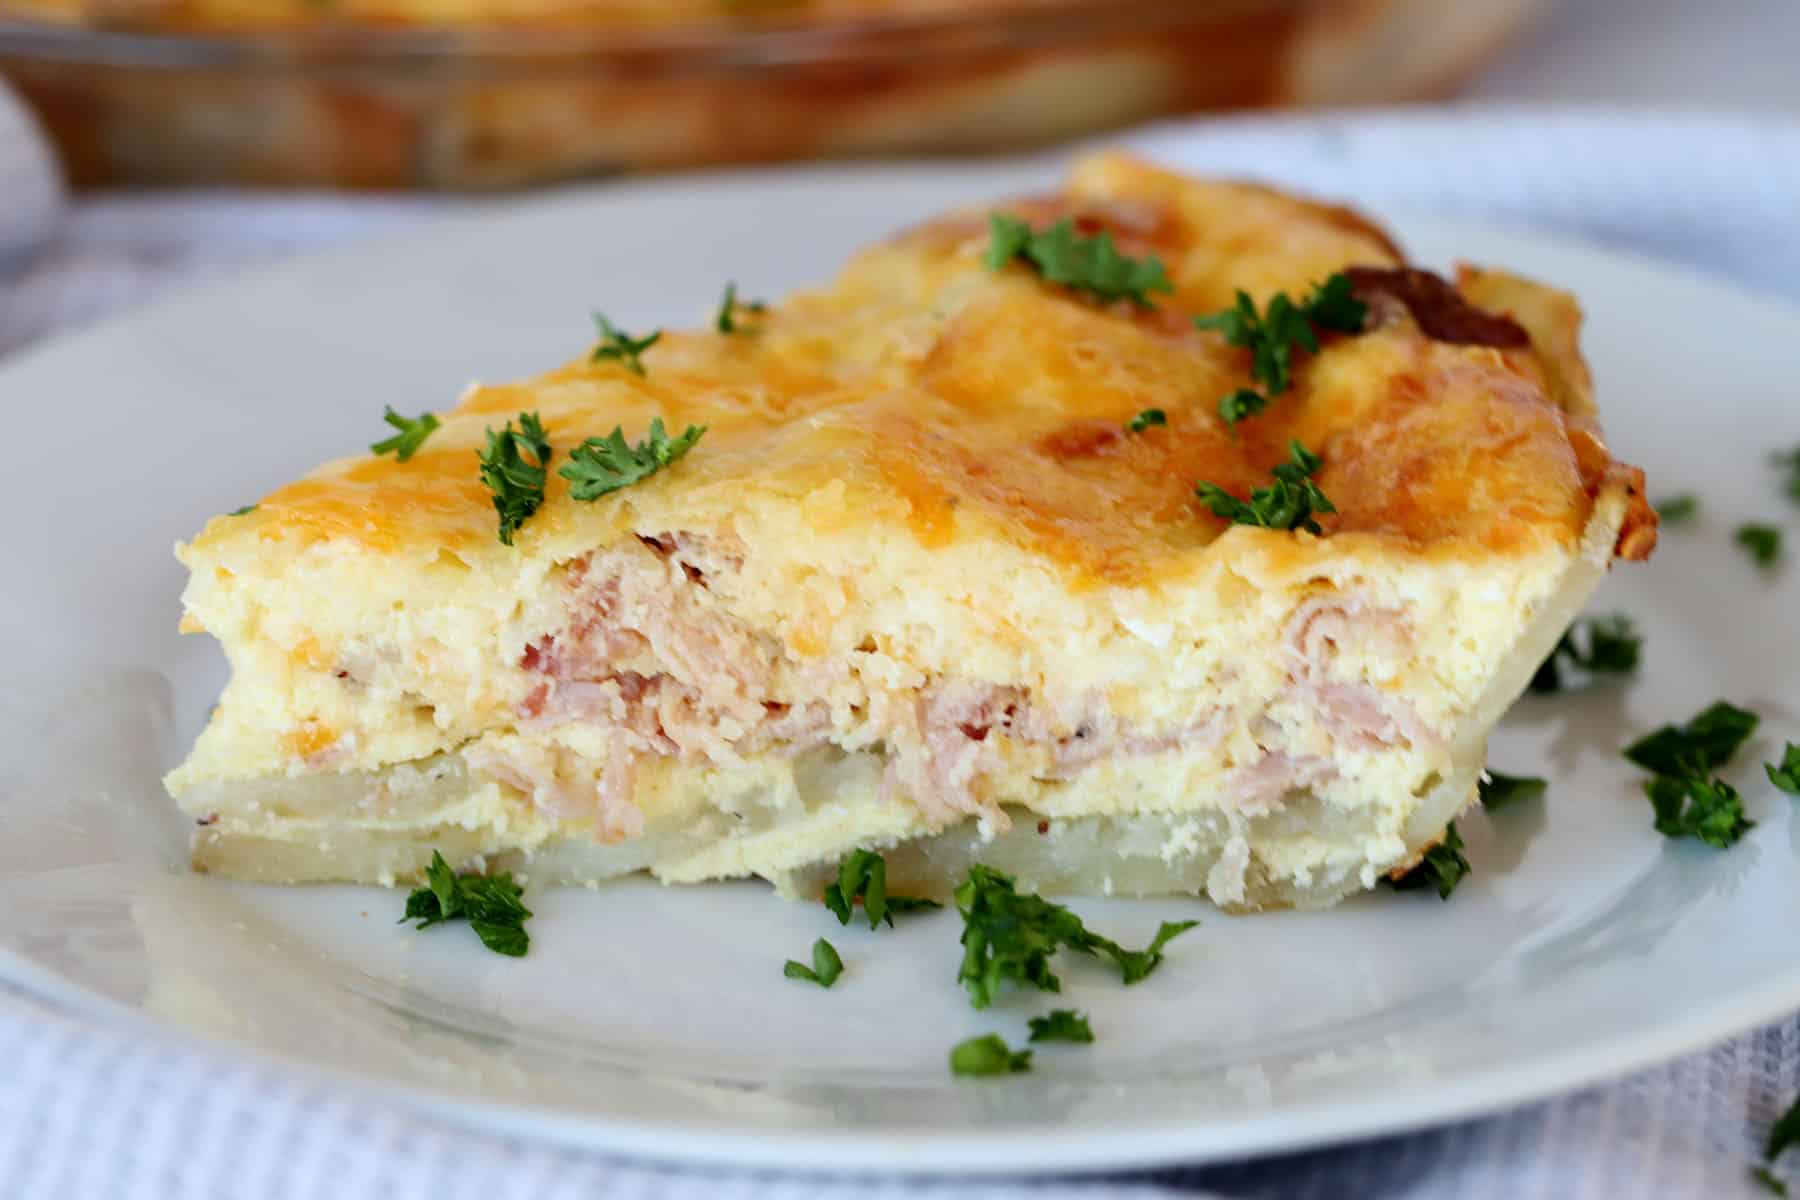 A slice of quiche on a white place with a potato crust and filled with ham and cheese, garnished with fresh parsley.